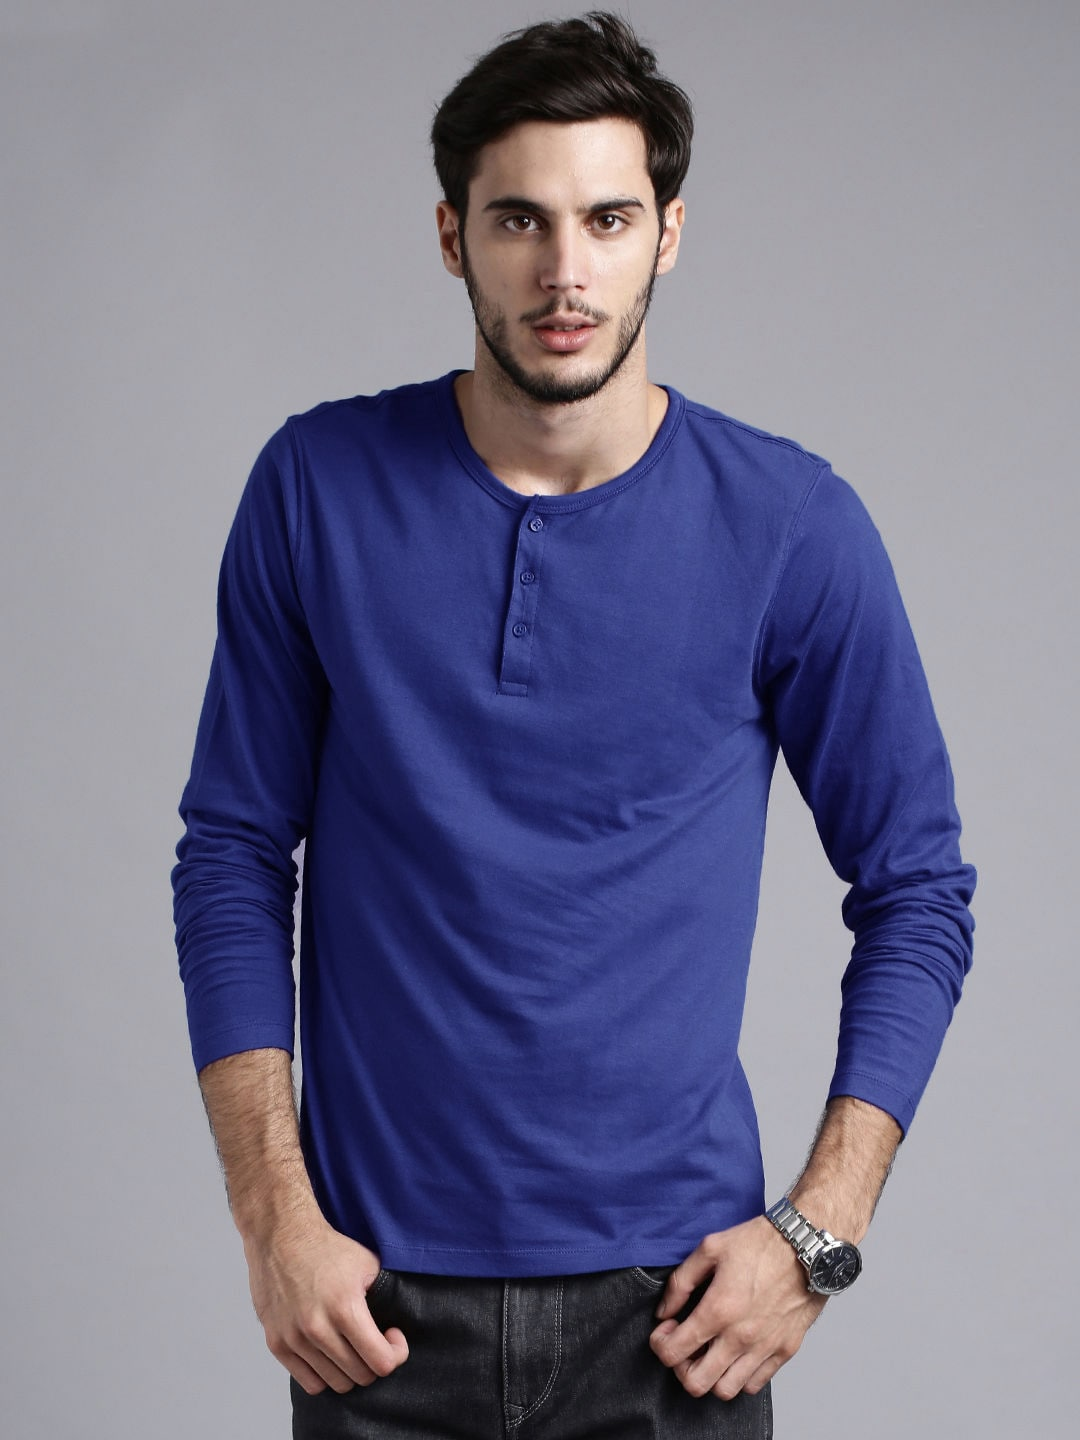 94b1888b1c Henley Tshirts - Buy Henley T-shirts for Men   Women Online - Myntra